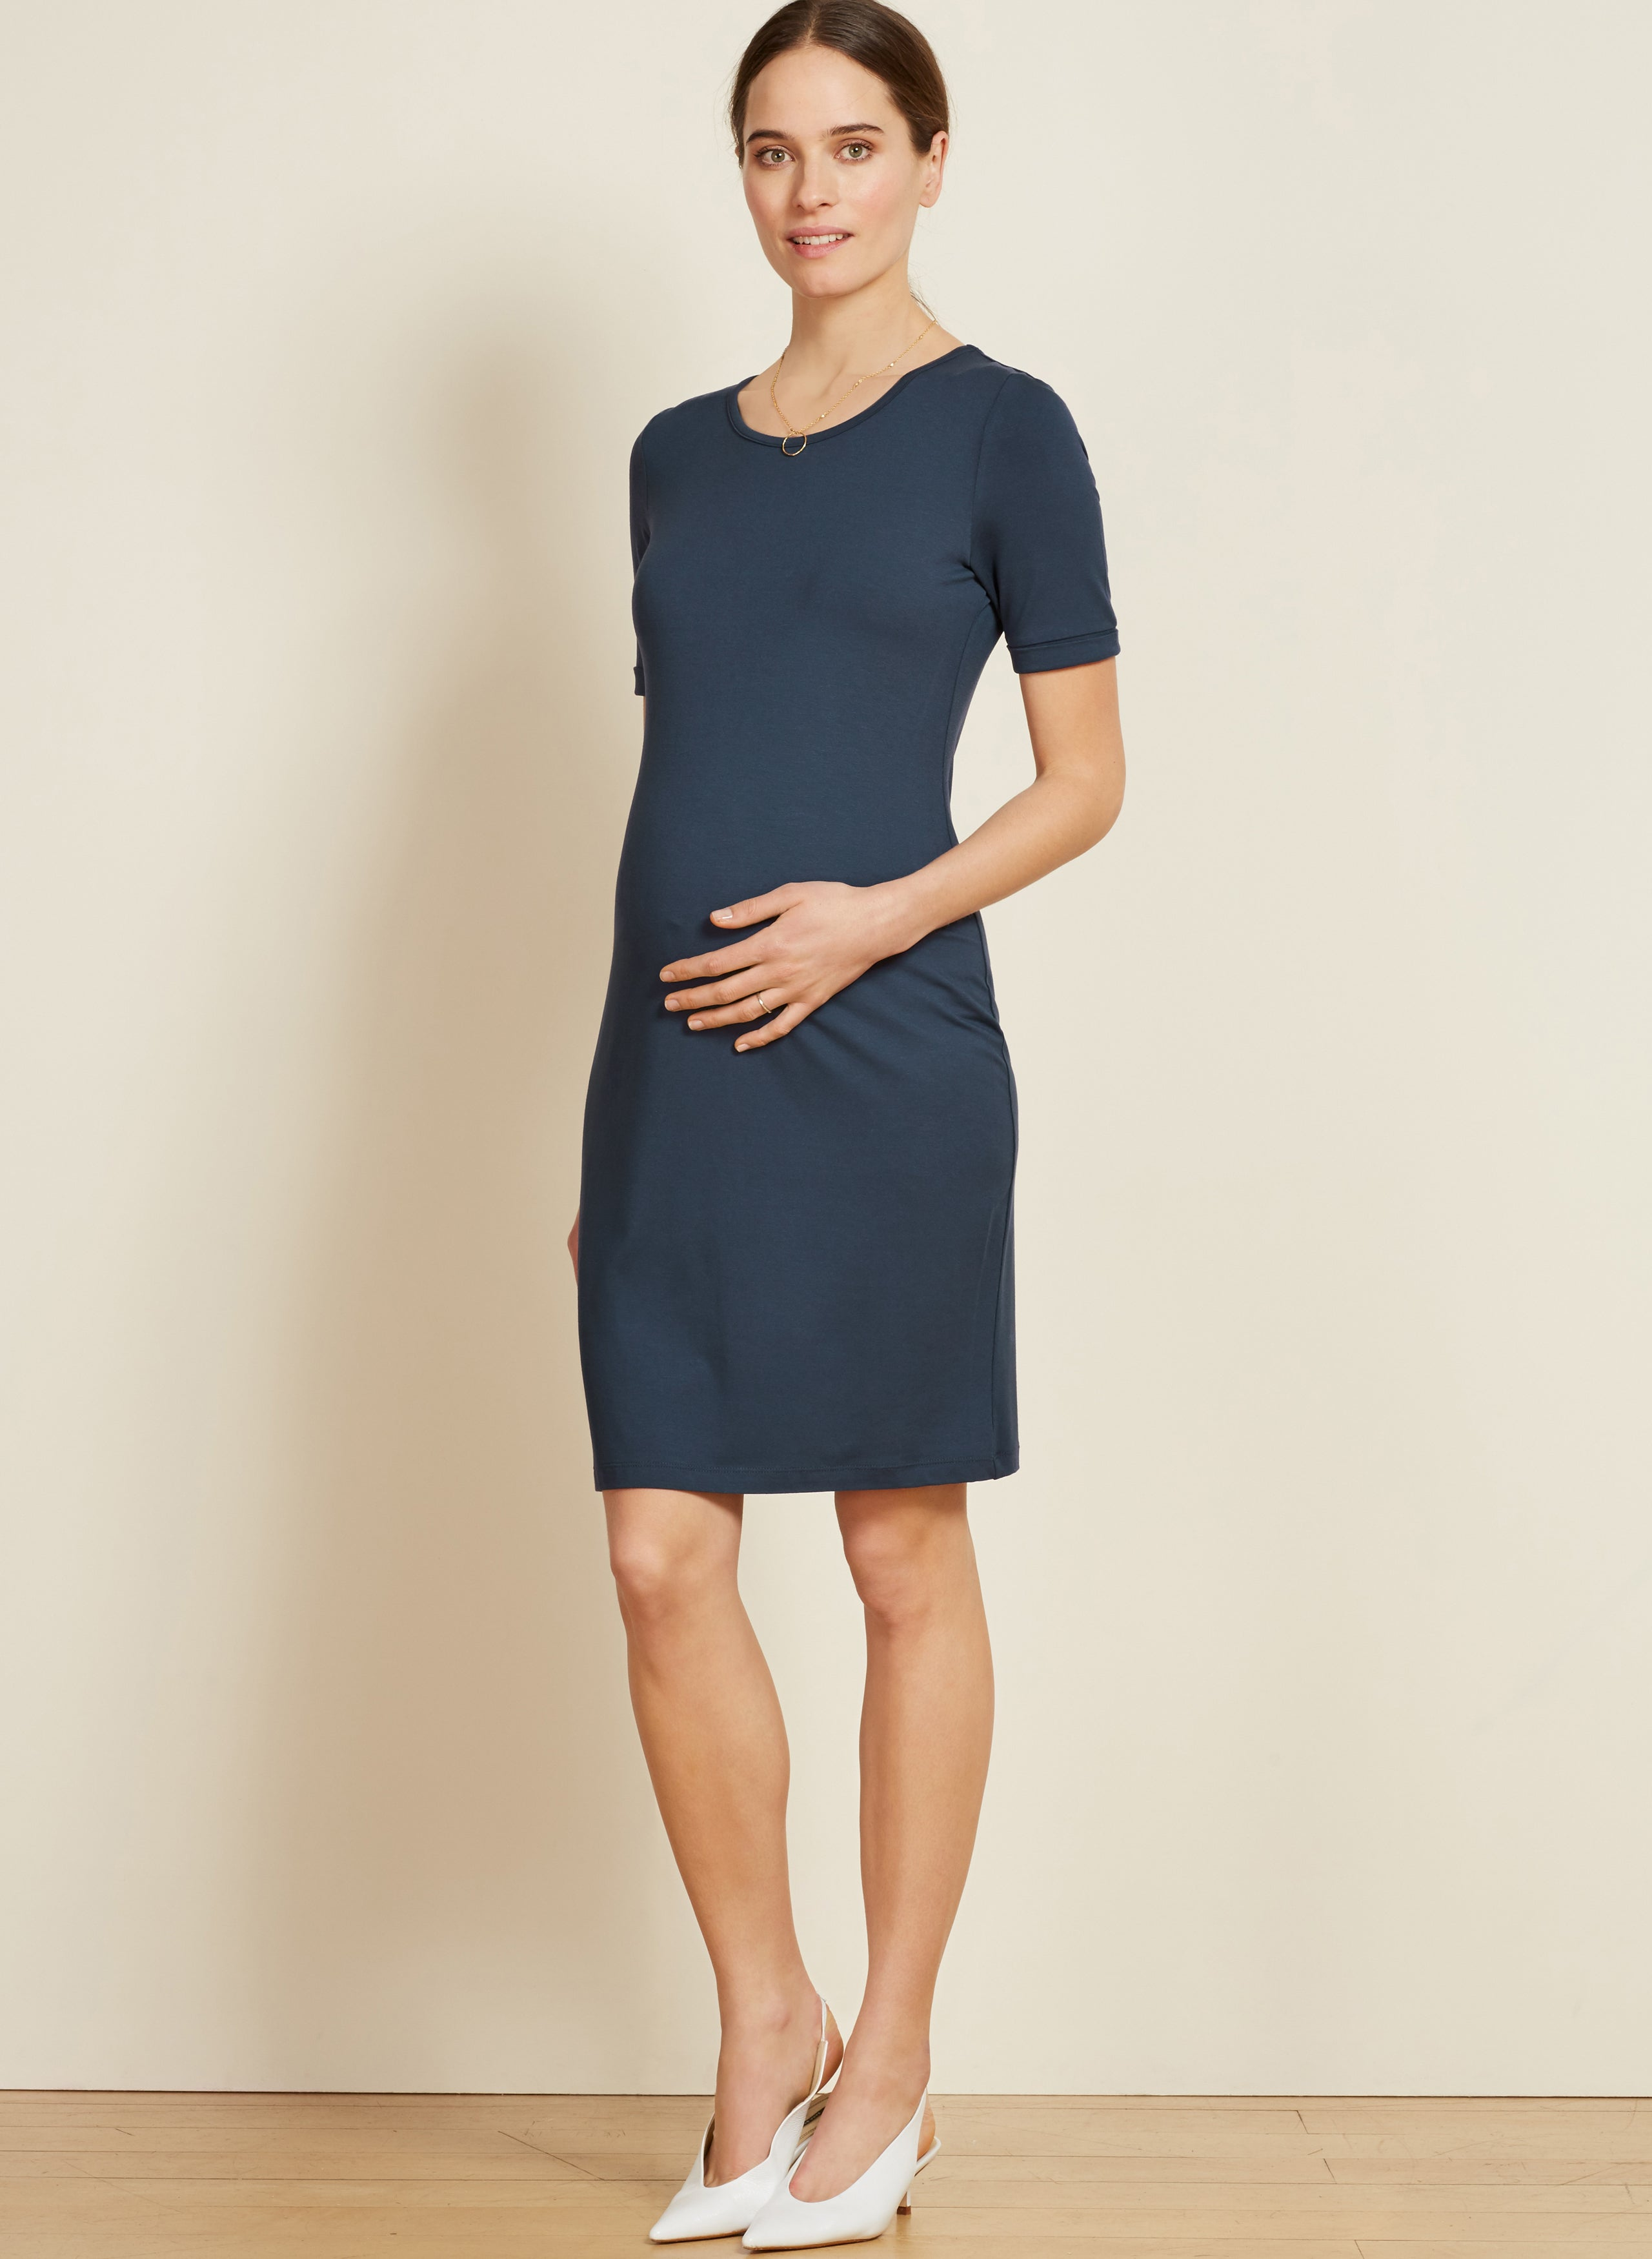 Ellie Maternity Dress